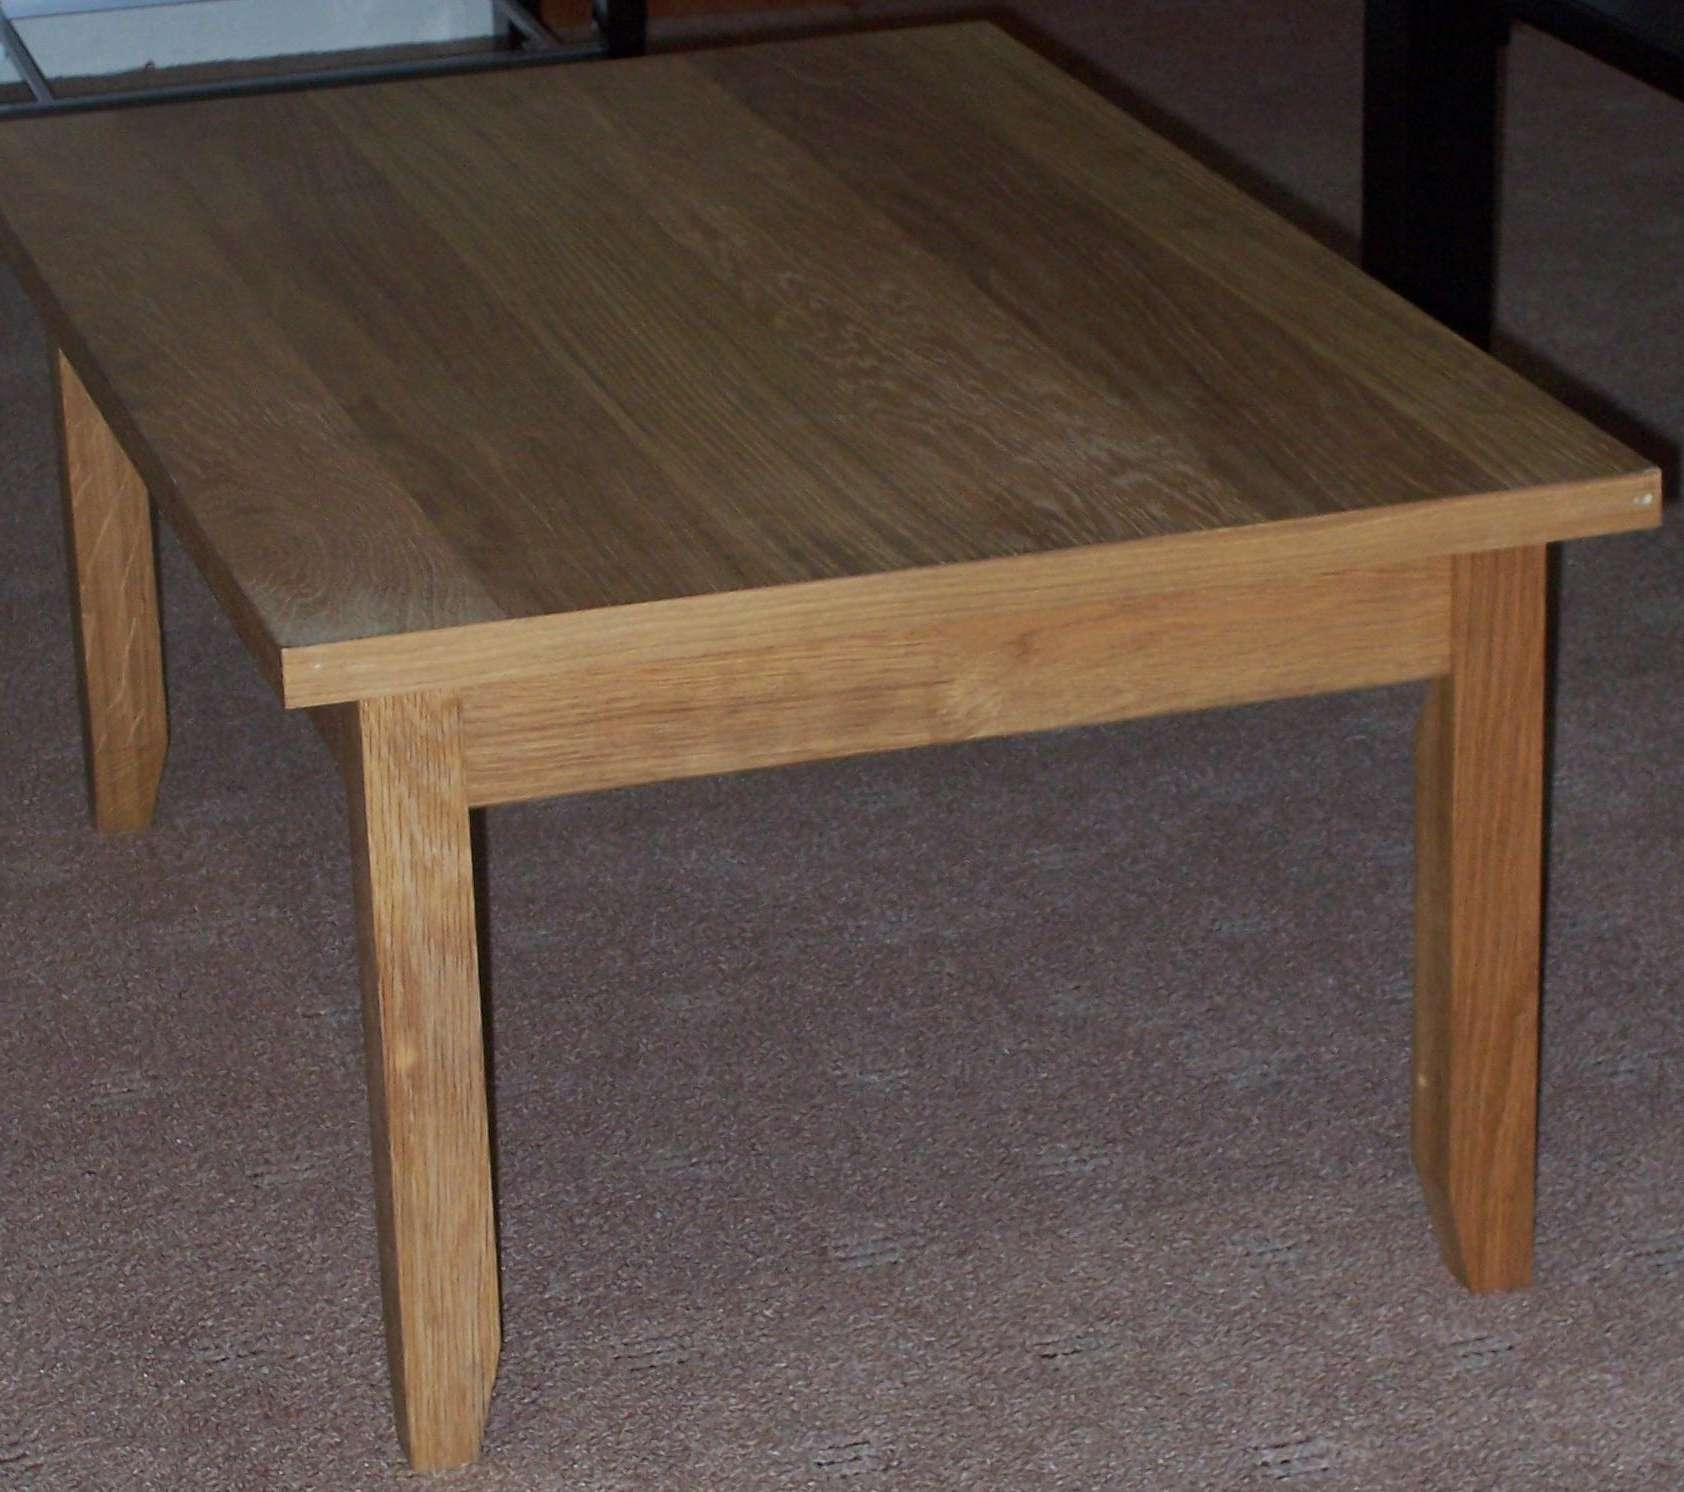 Furniture For Your Lounge, Dining And Living Room, A Liquidation In Best And Newest Oak Veneer Coffee Tables (View 16 of 20)